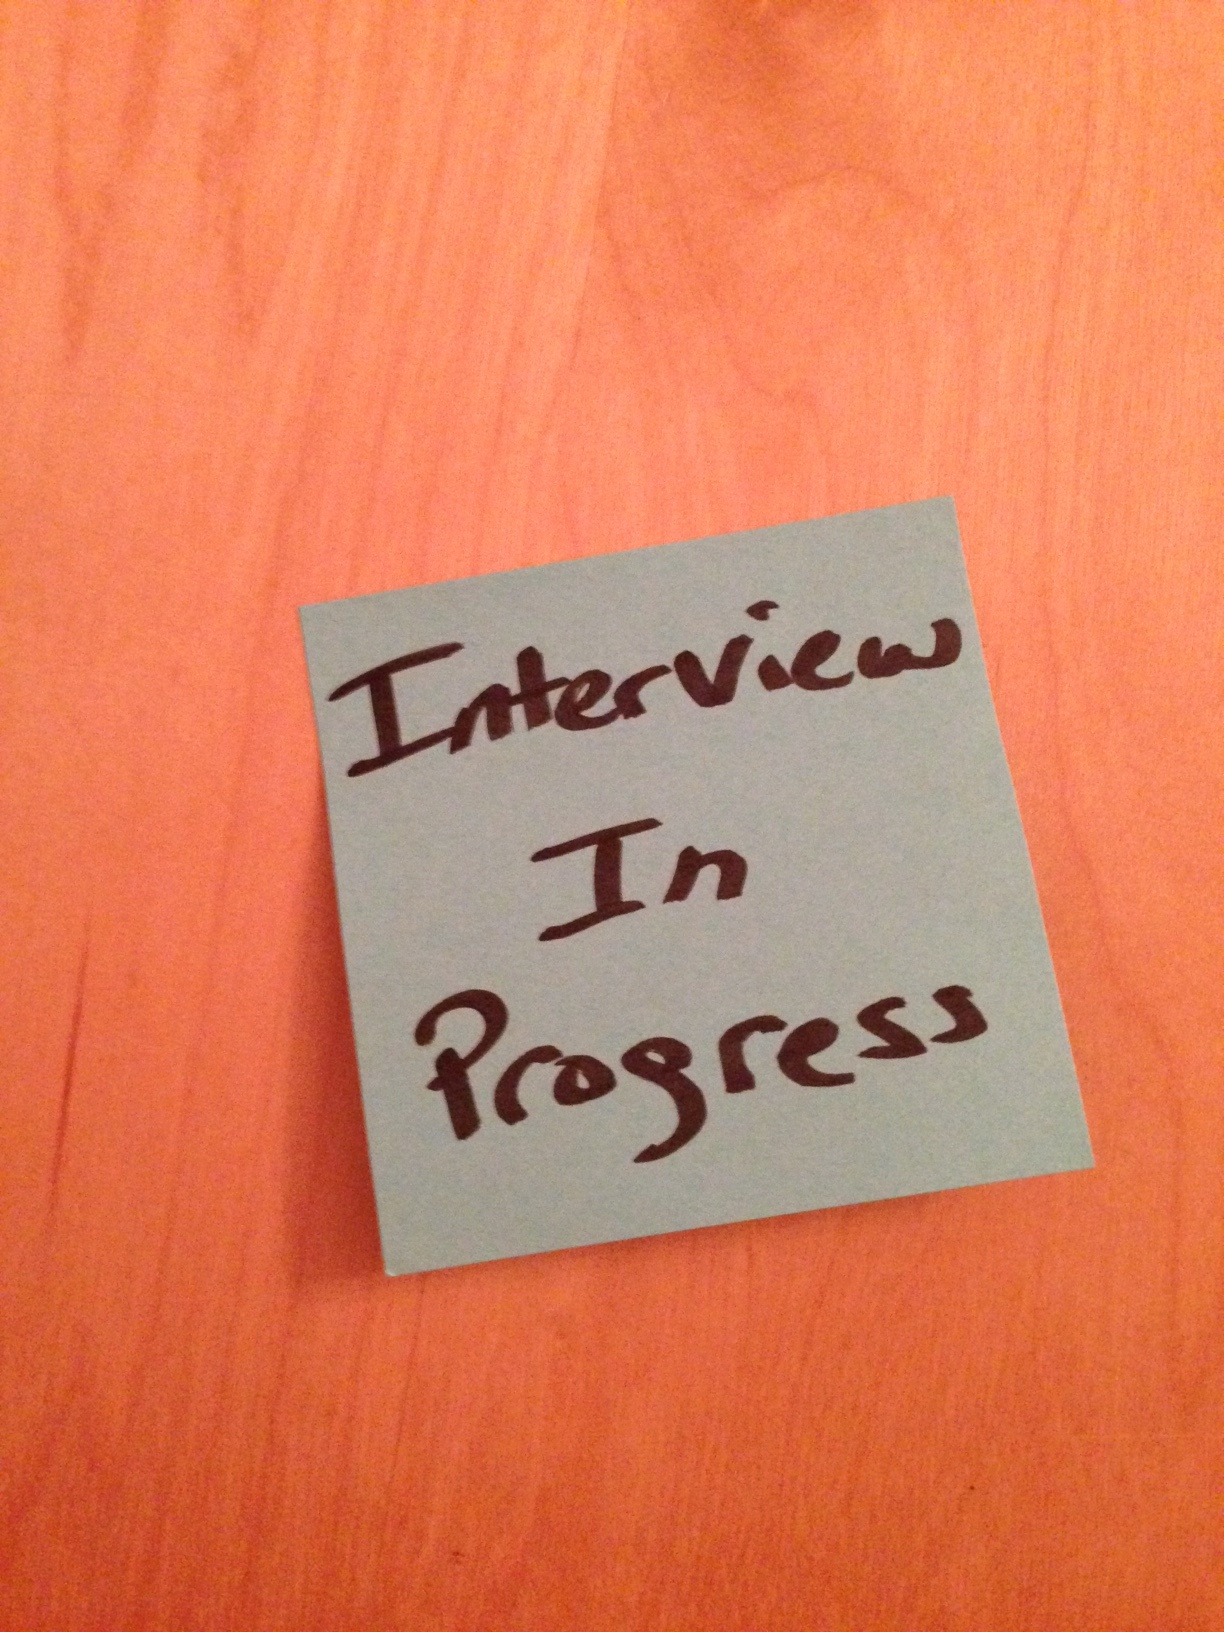 7 key questions to ask during your grad school interview 7 key questions to ask during your grad school interview psychology today